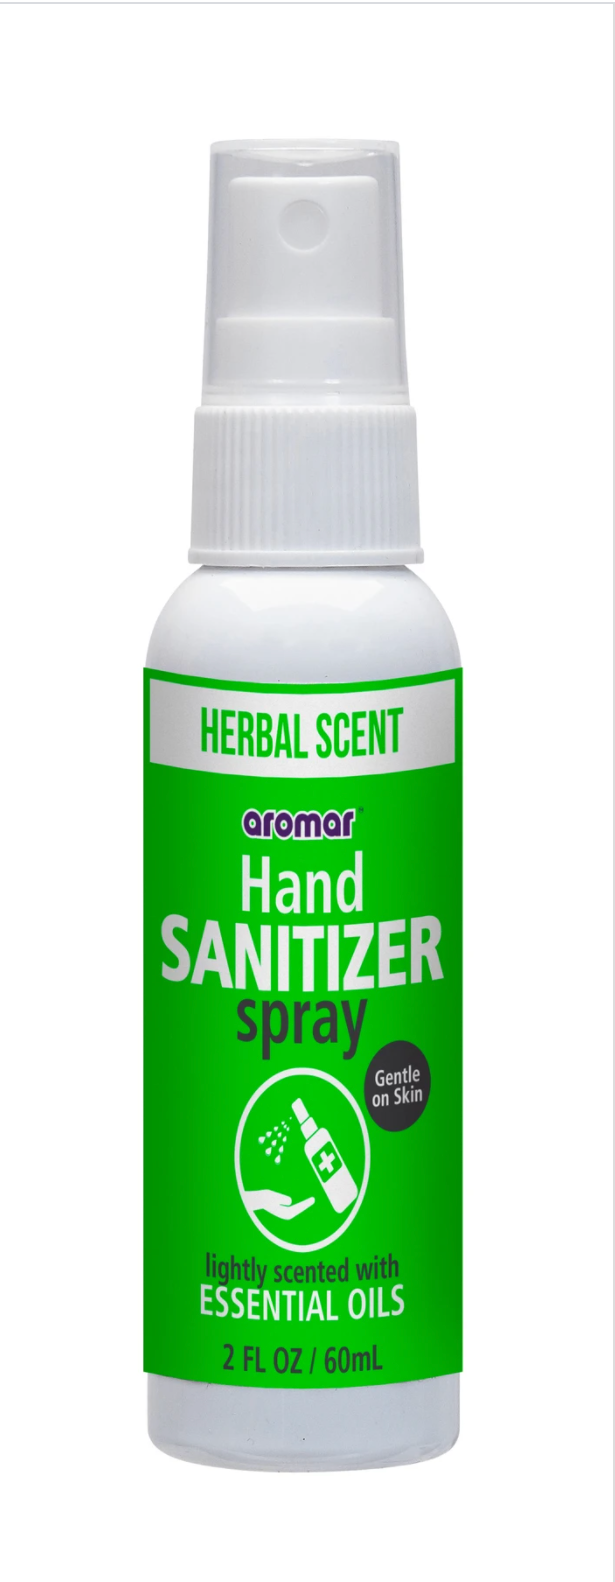 Aromar Spray Hand Sanitizer 2oz.